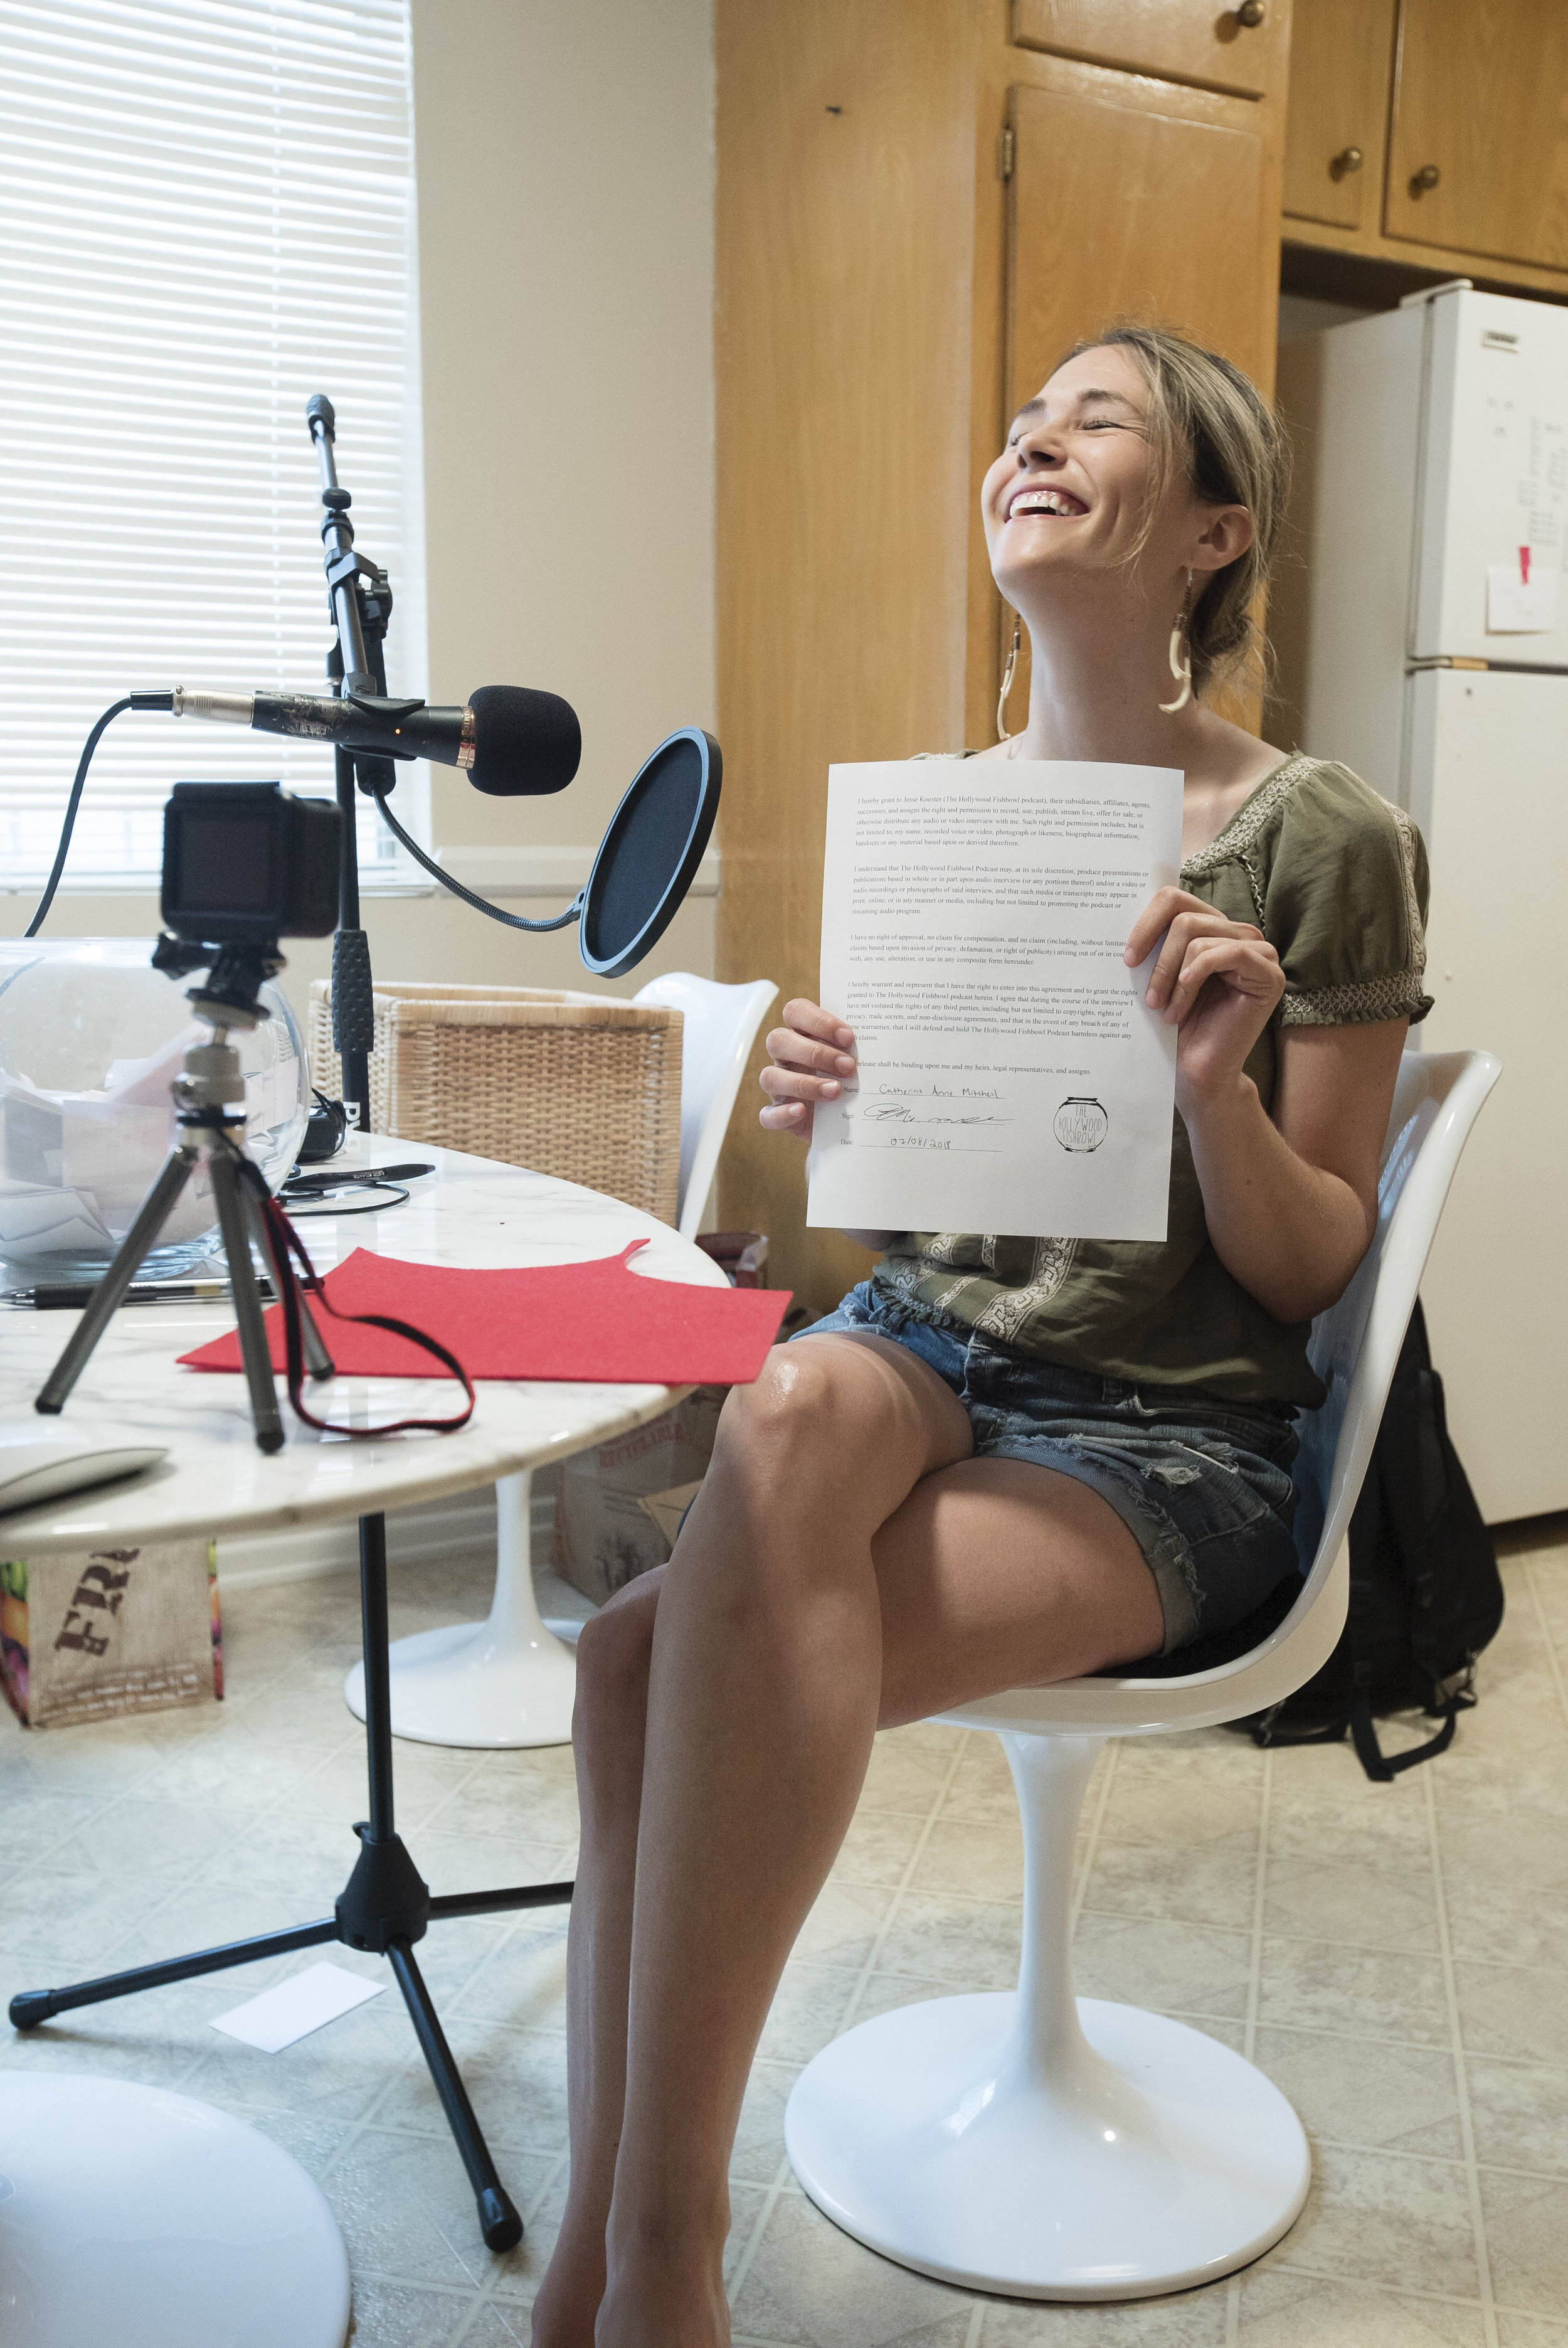 That moment of pure joy when you realize that you've signed a release to be on a podcast! There's truly nothing like it.